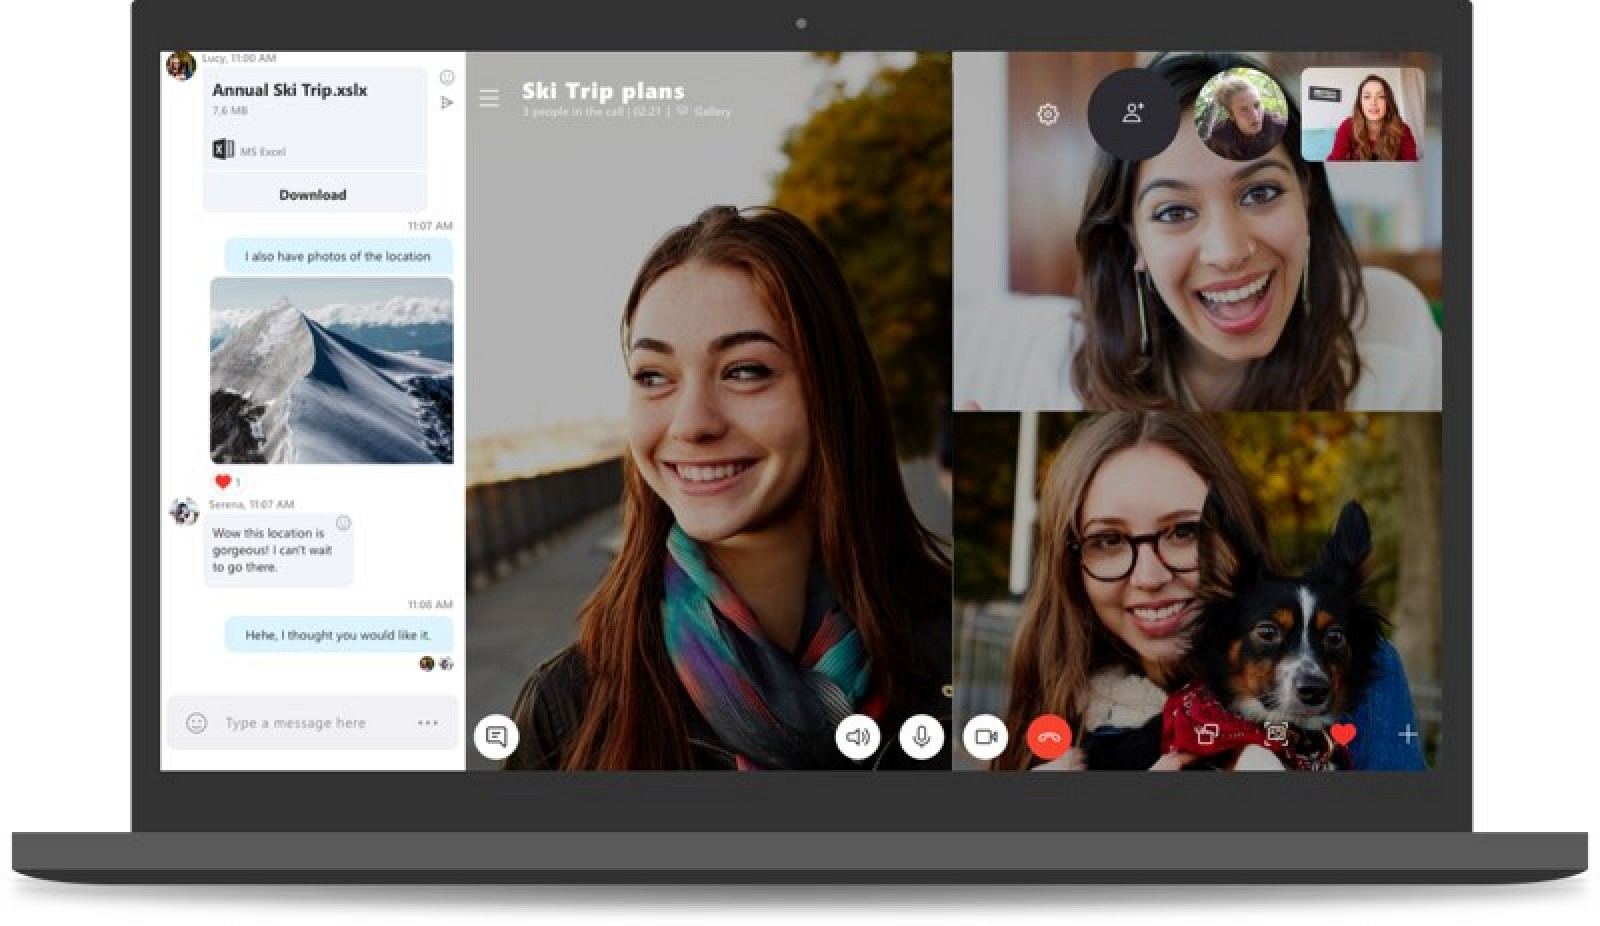 Microsoft Plans to Keep Skype Classic Available 'for Some Time